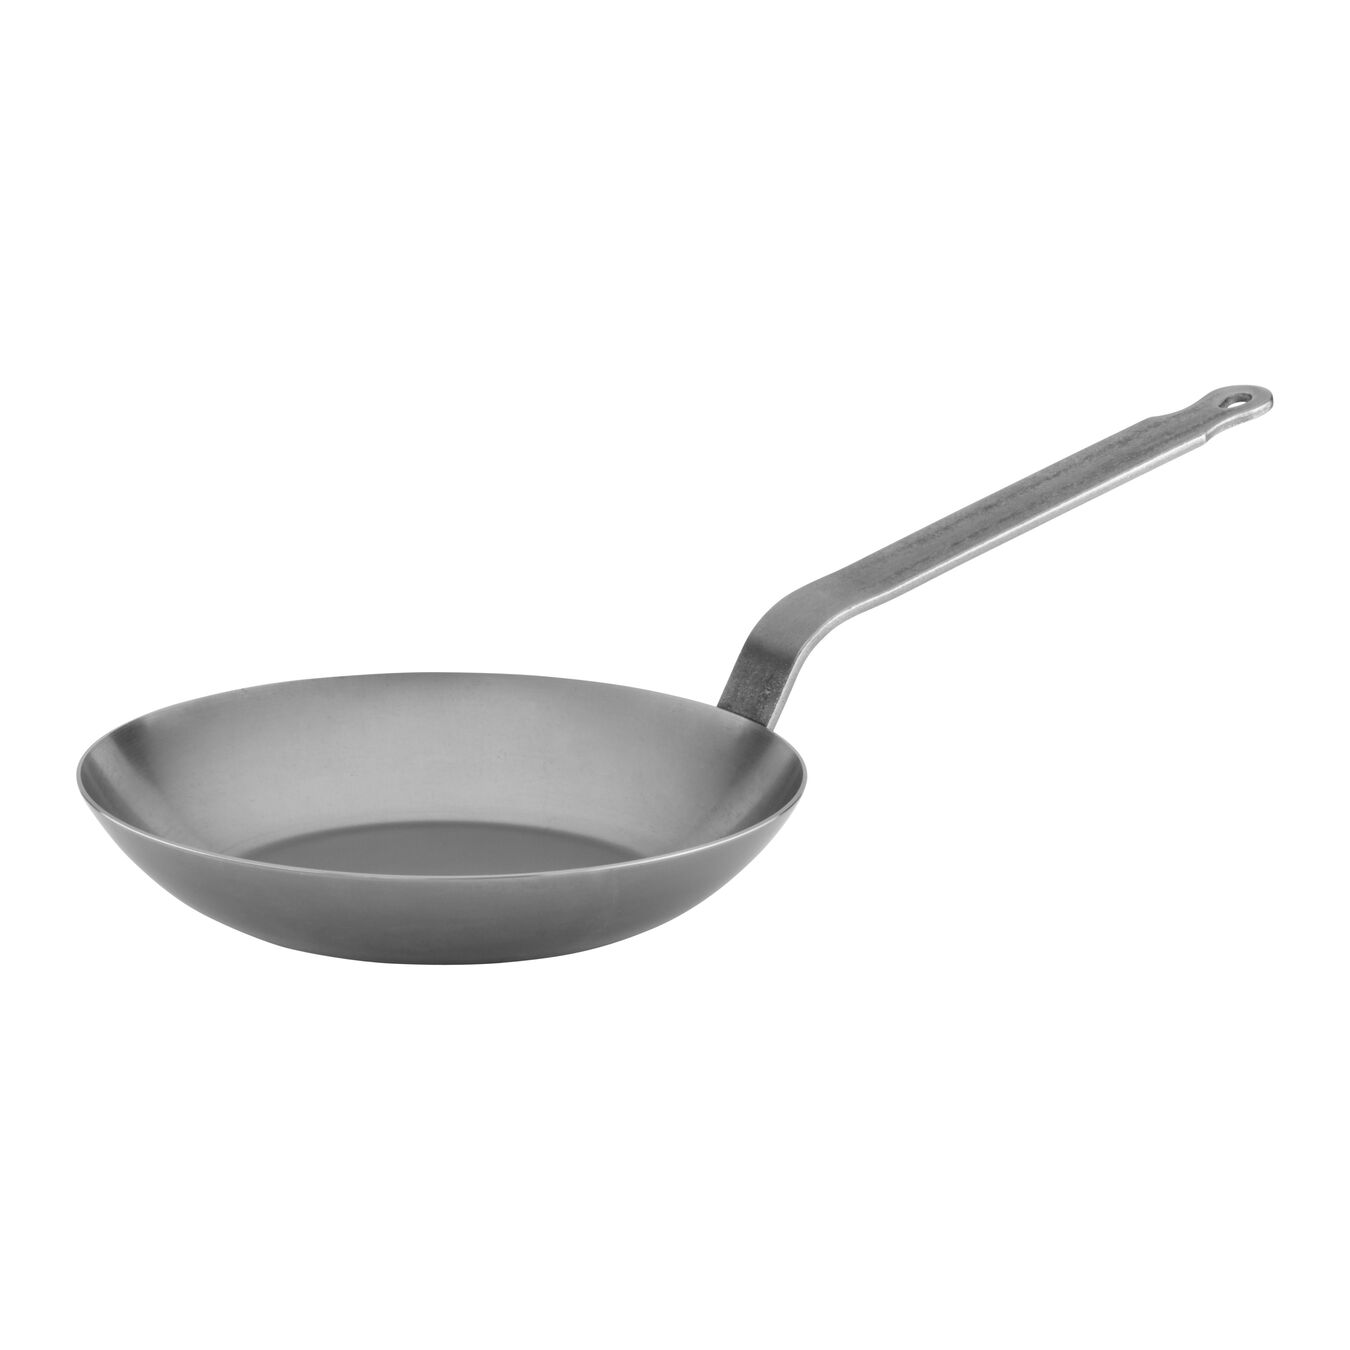 9.5-inch, carbon steel, Frying pan,,large 2